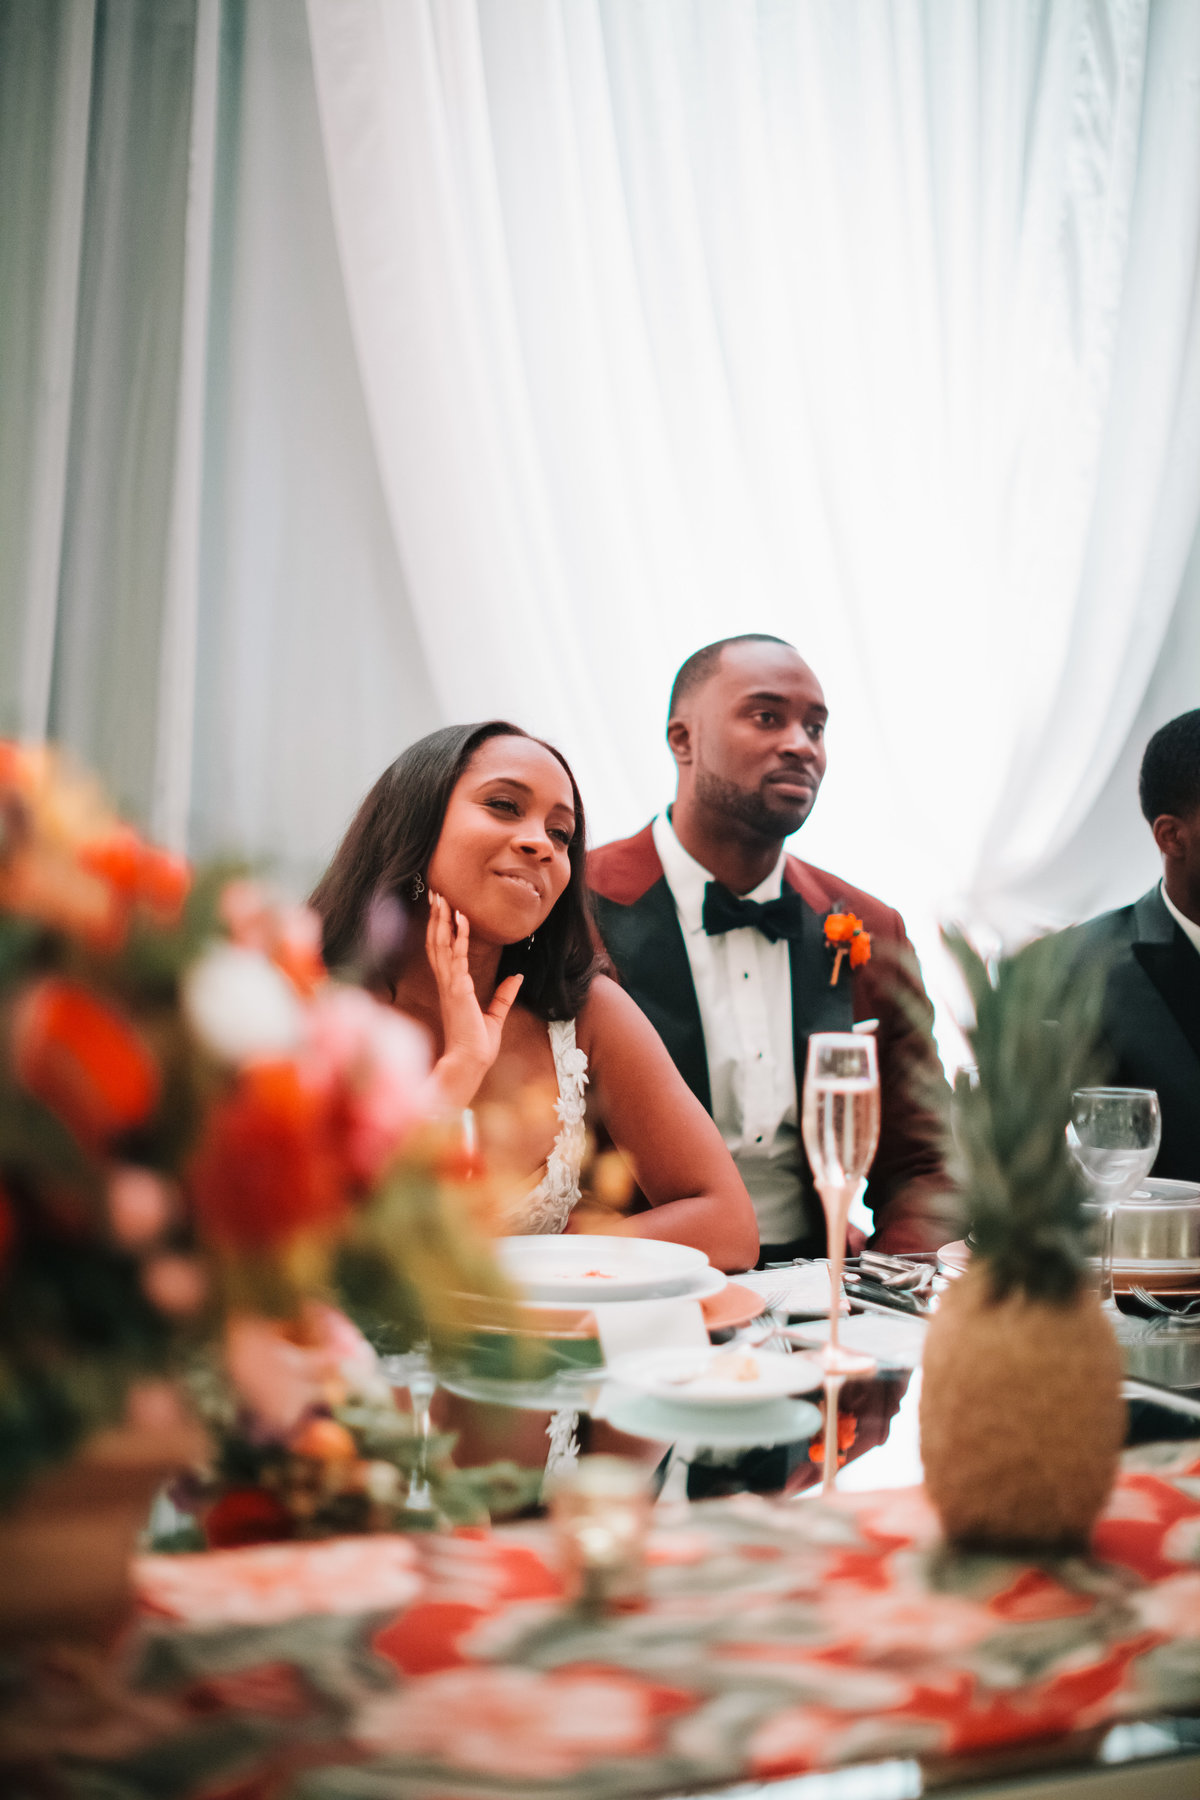 Tropical_cancun_wedding_Taylor_Hov_Erika_Layne-4386